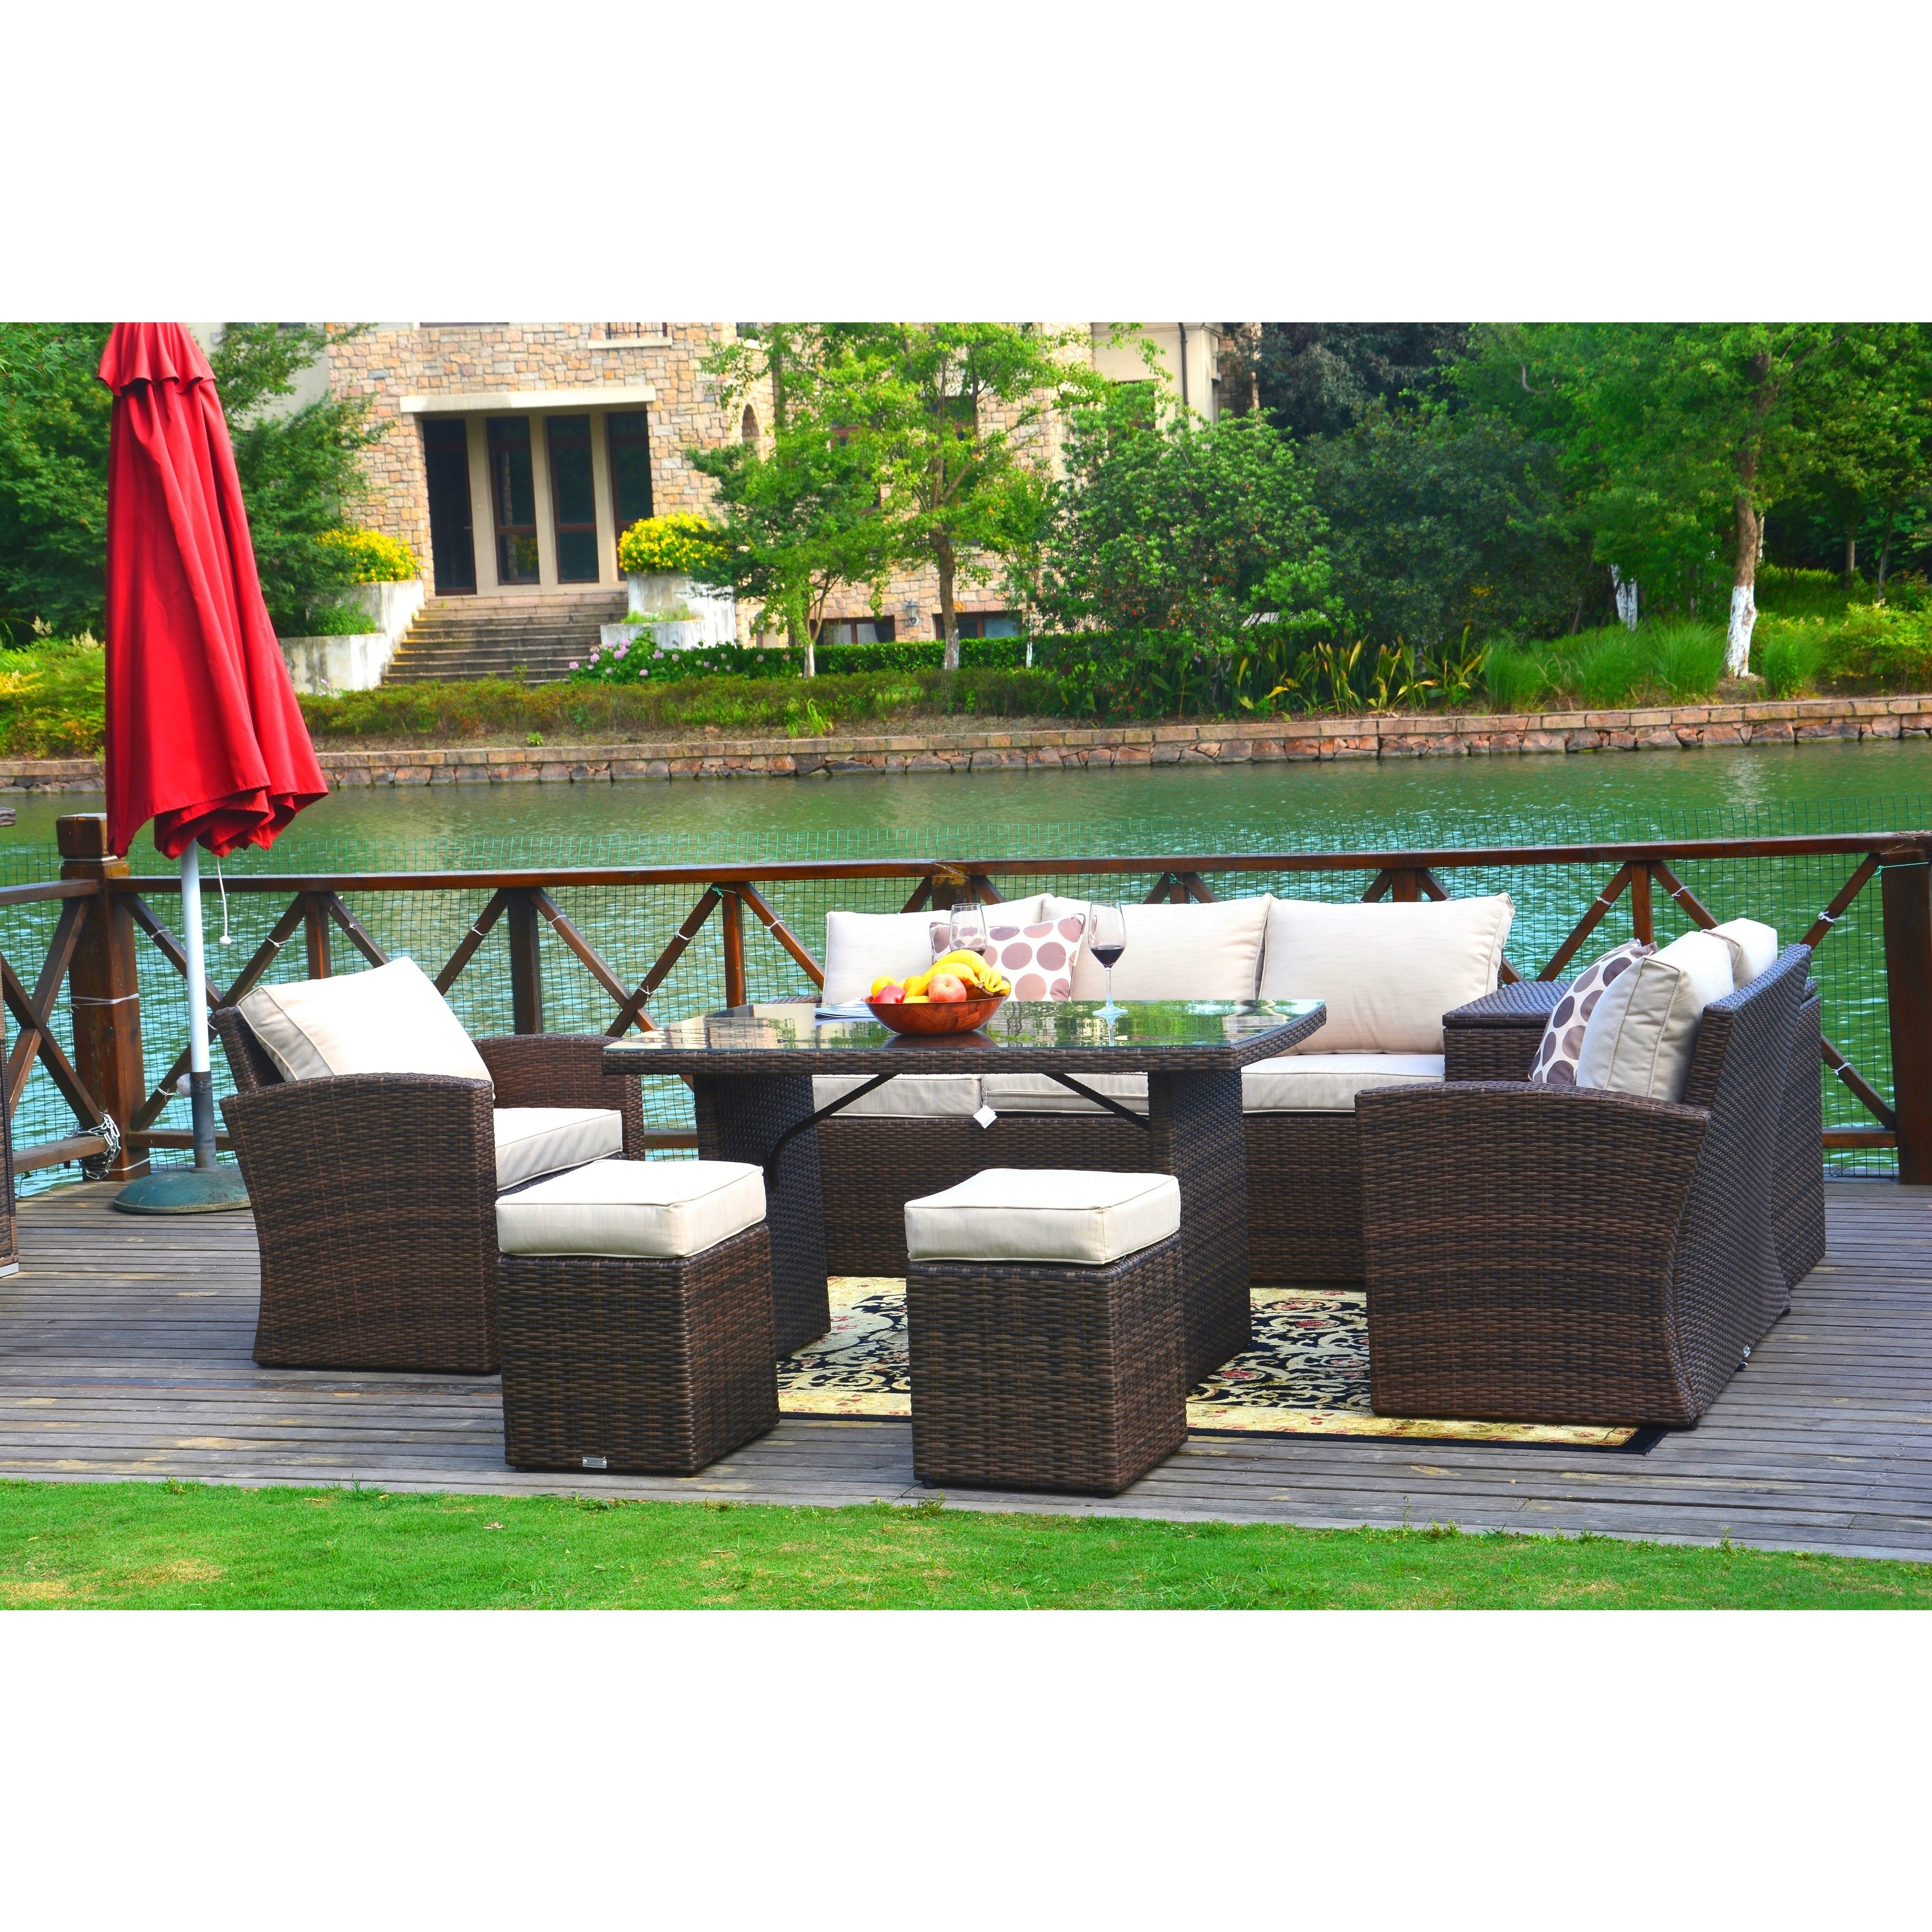 Direct Wicker Cannes Outdoor 7 piece Patio Furniture Set with Side